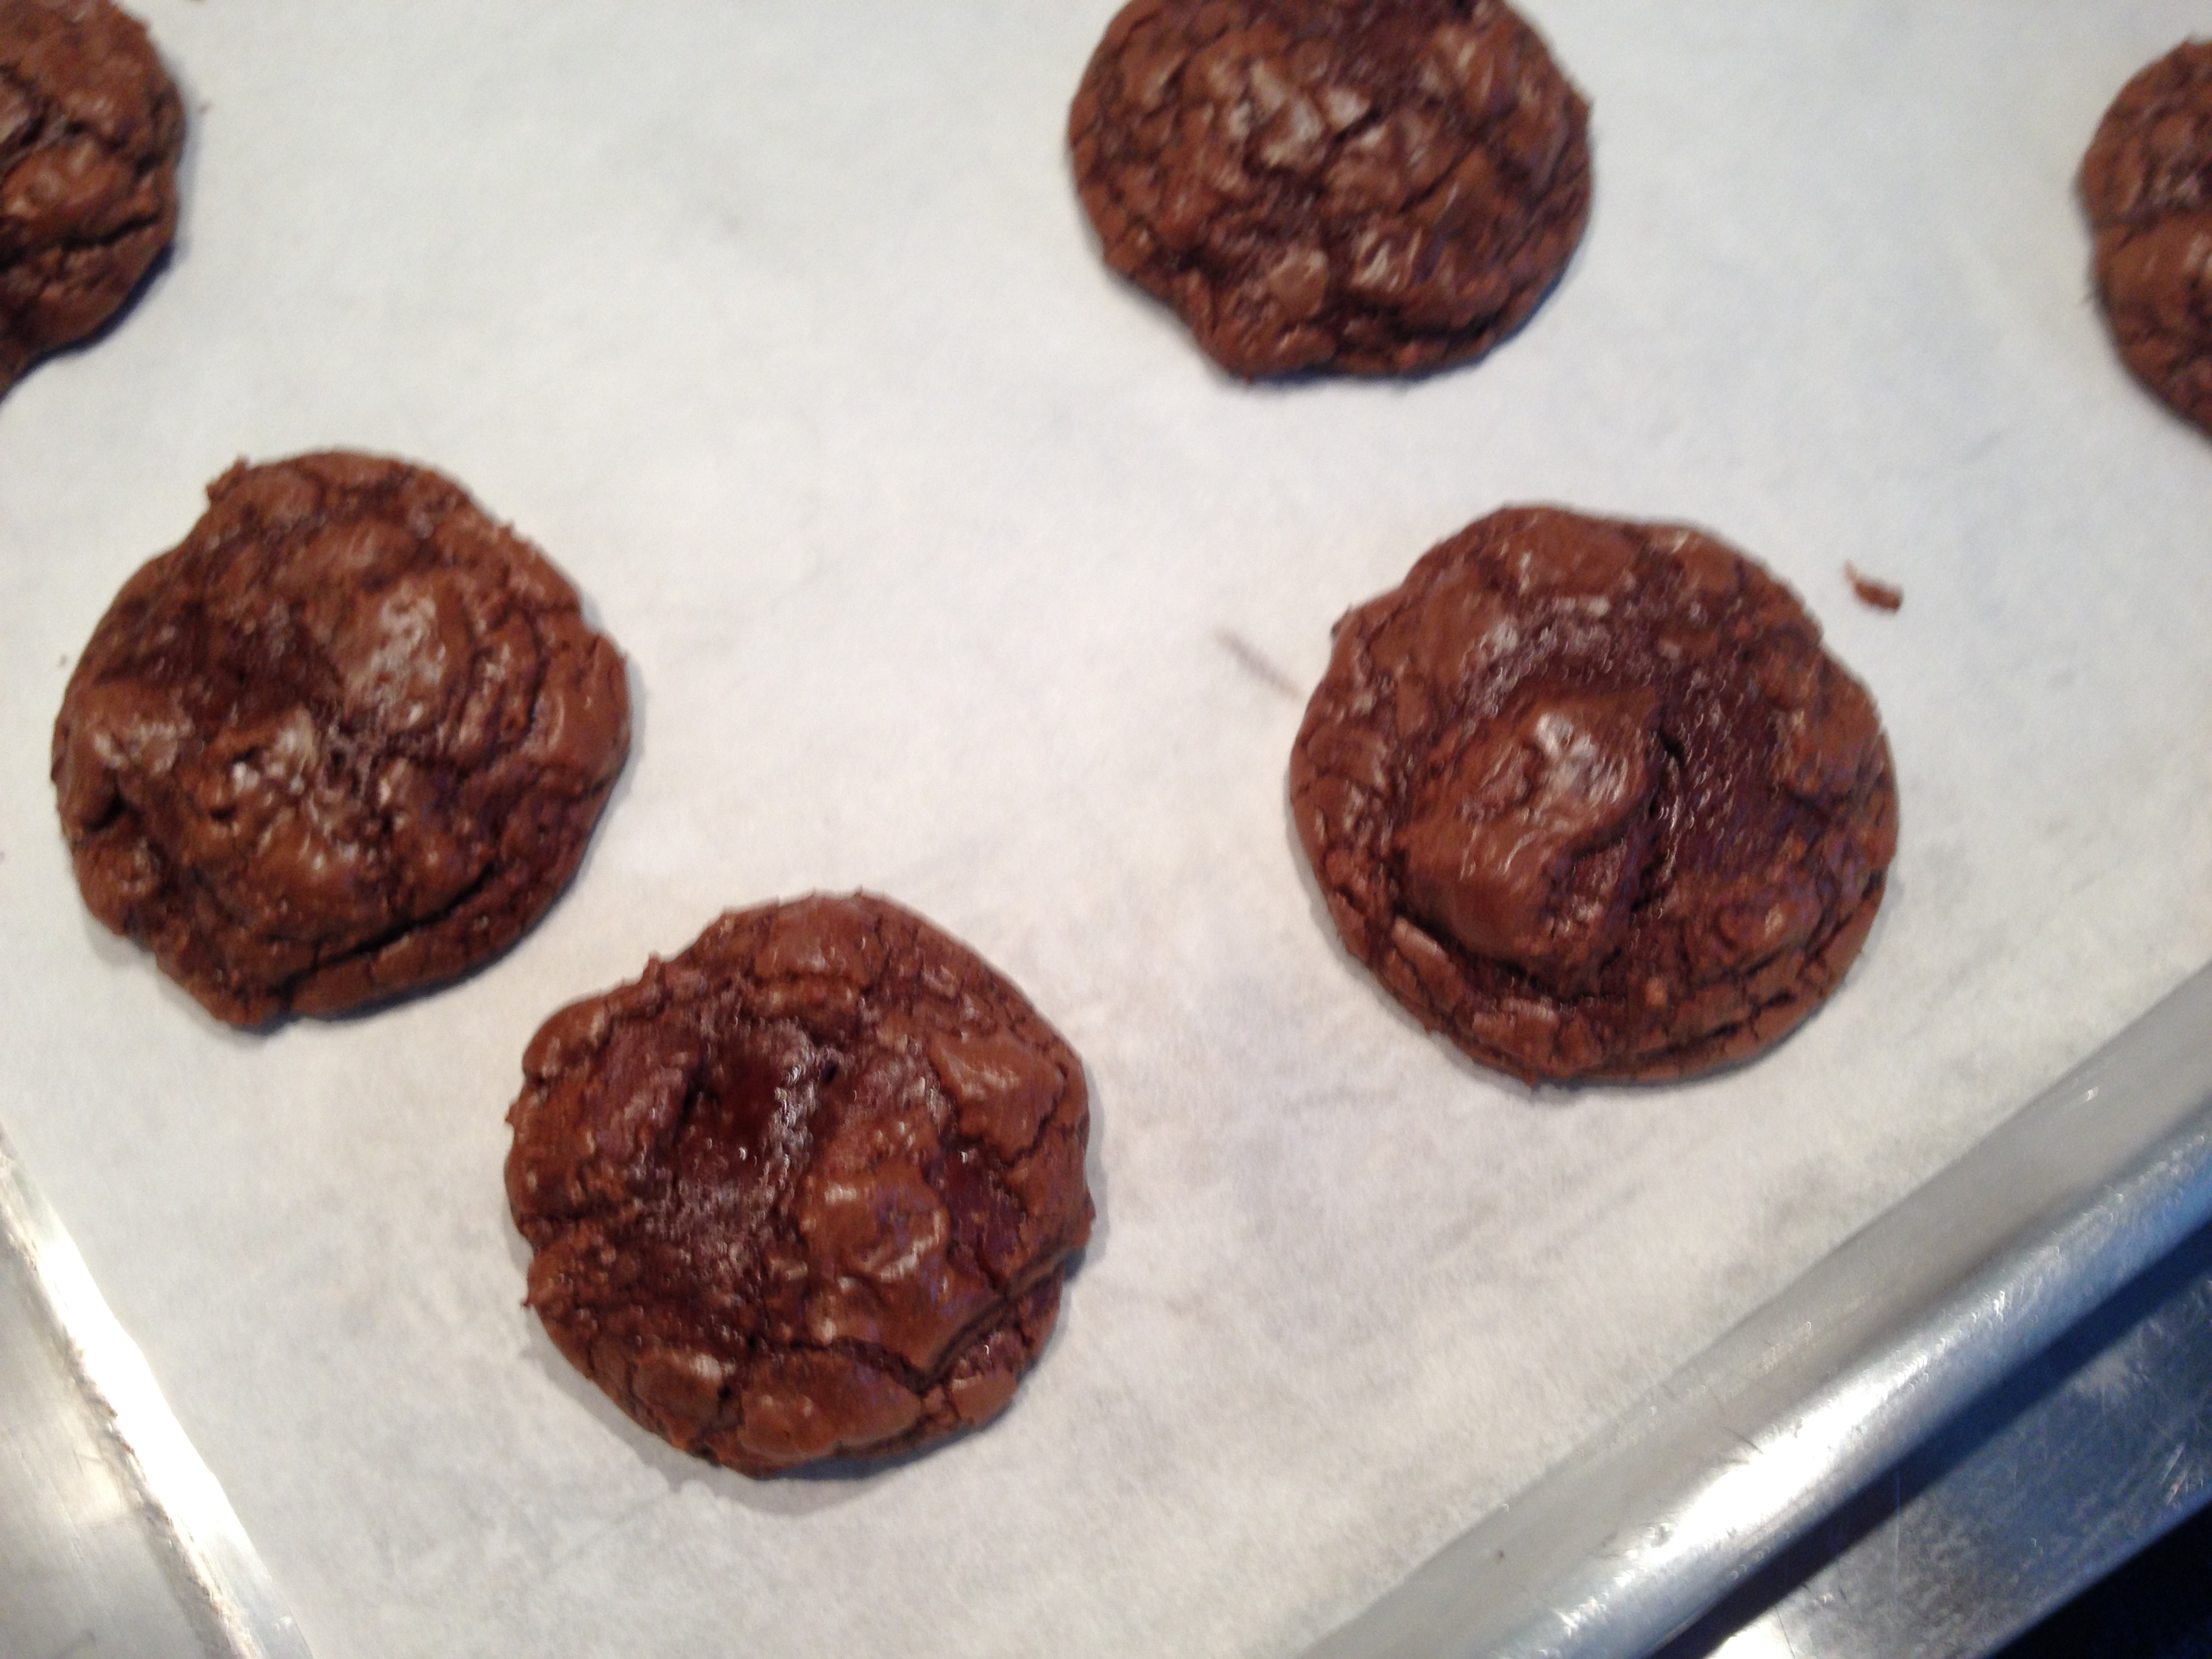 Soft and Crinkly Chocolate Cookies